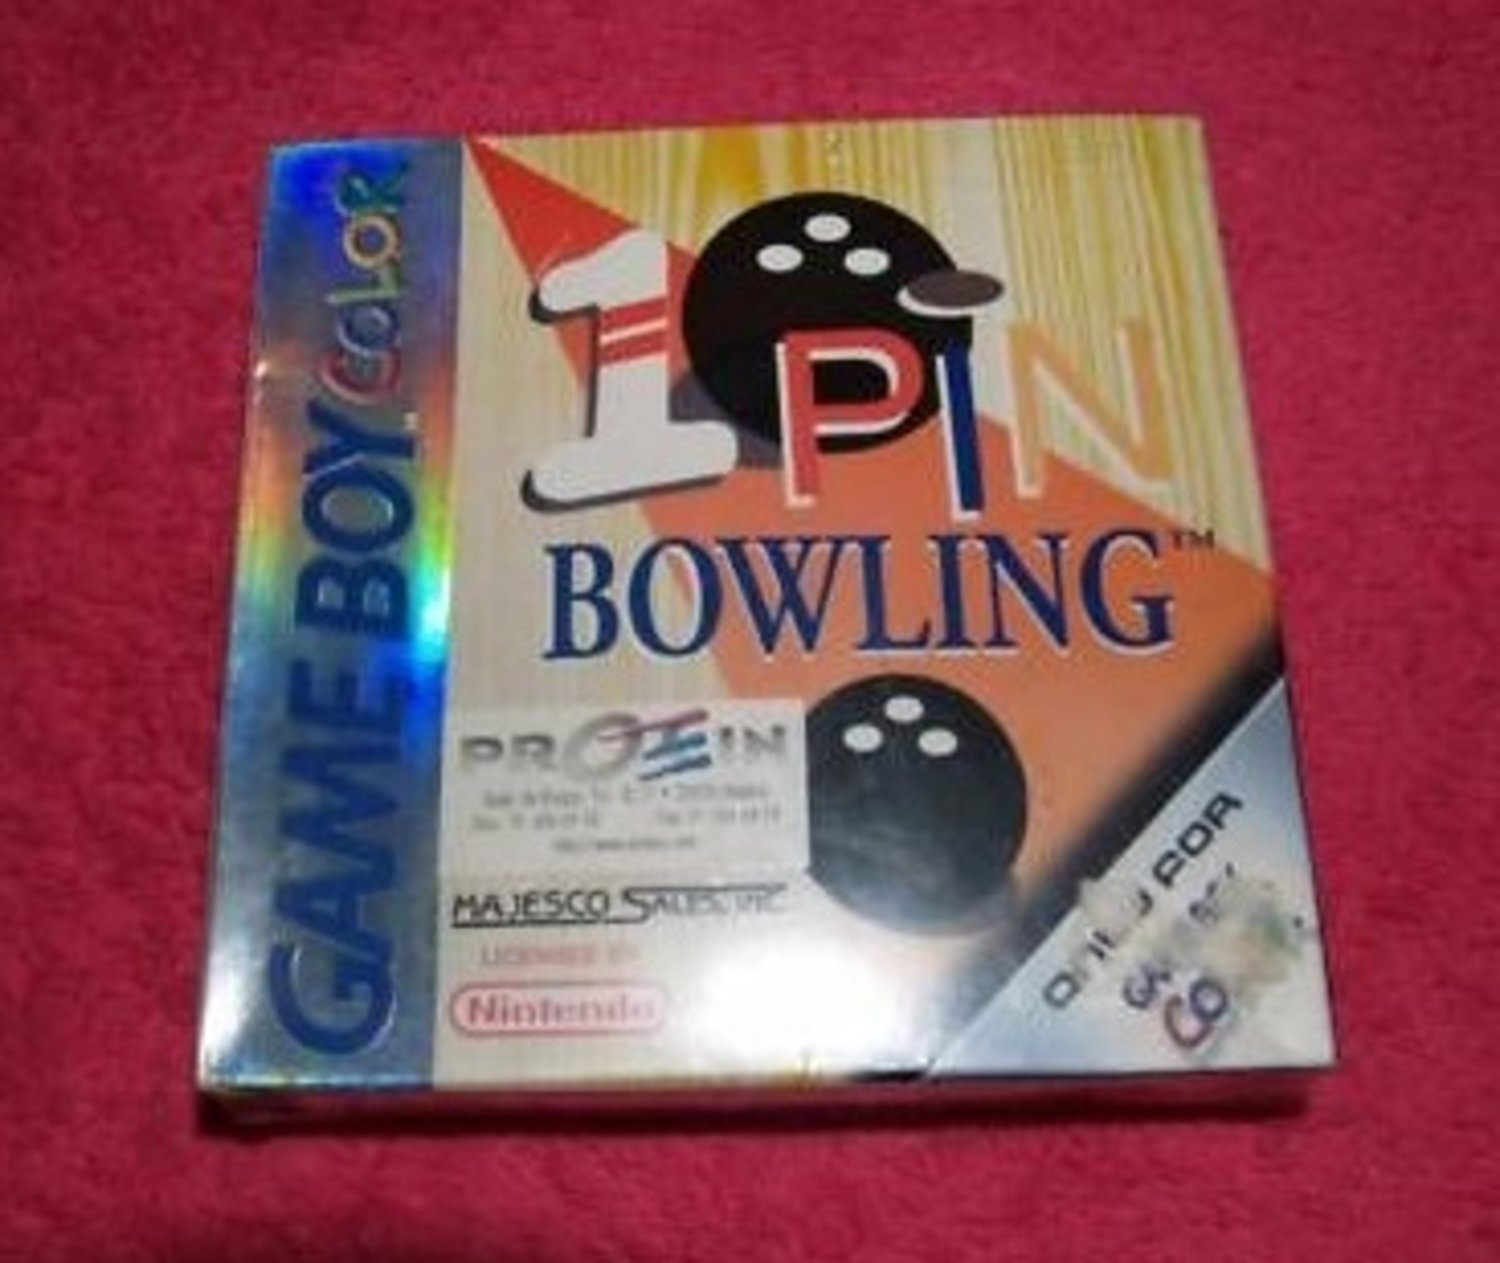 10 Pin Bowling - Gameboy Color